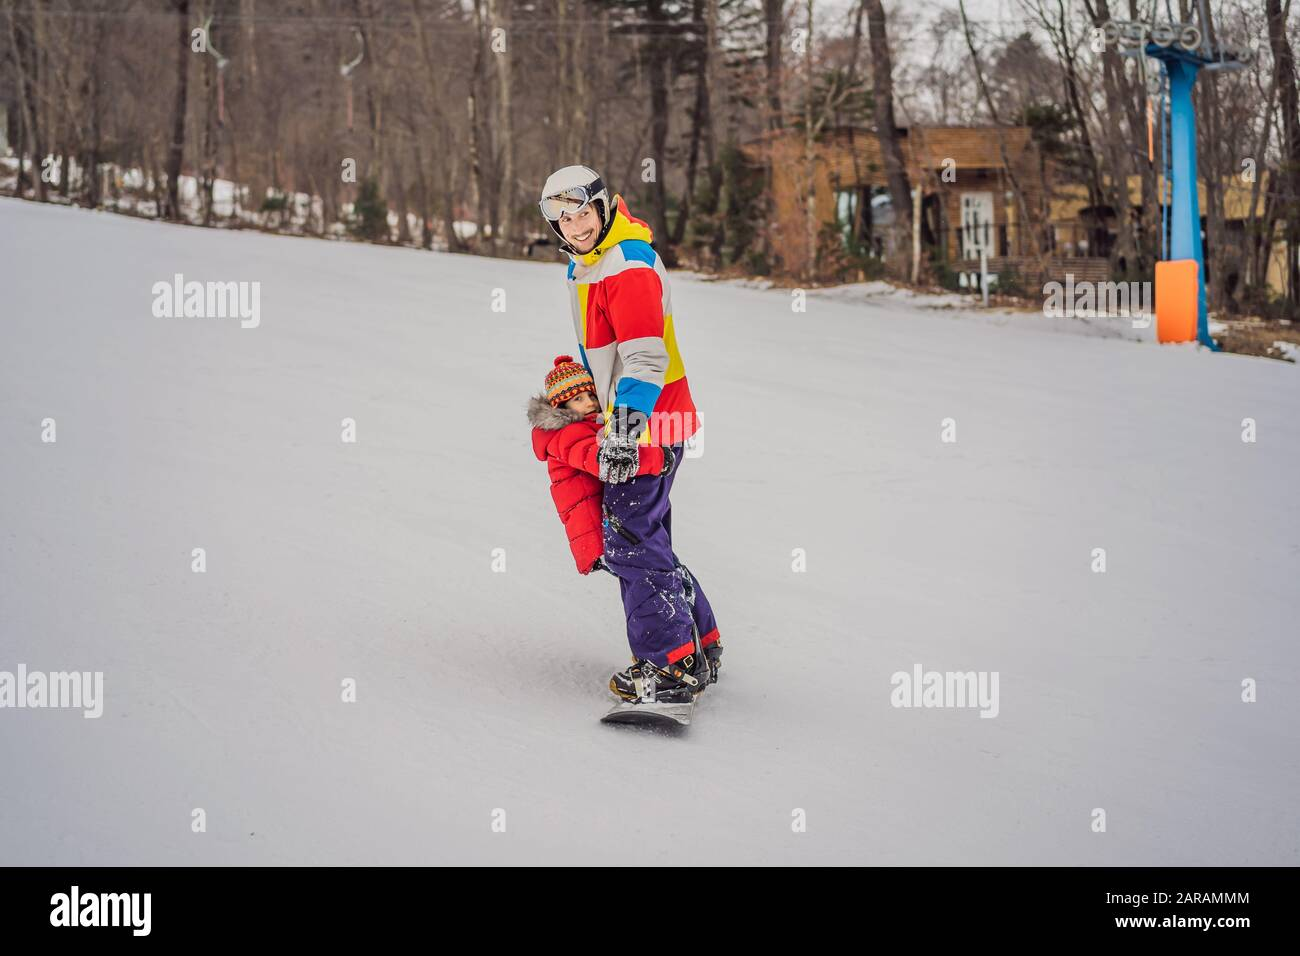 Dad and son ride the same snowboard, breaking safety precautions Stock Photo